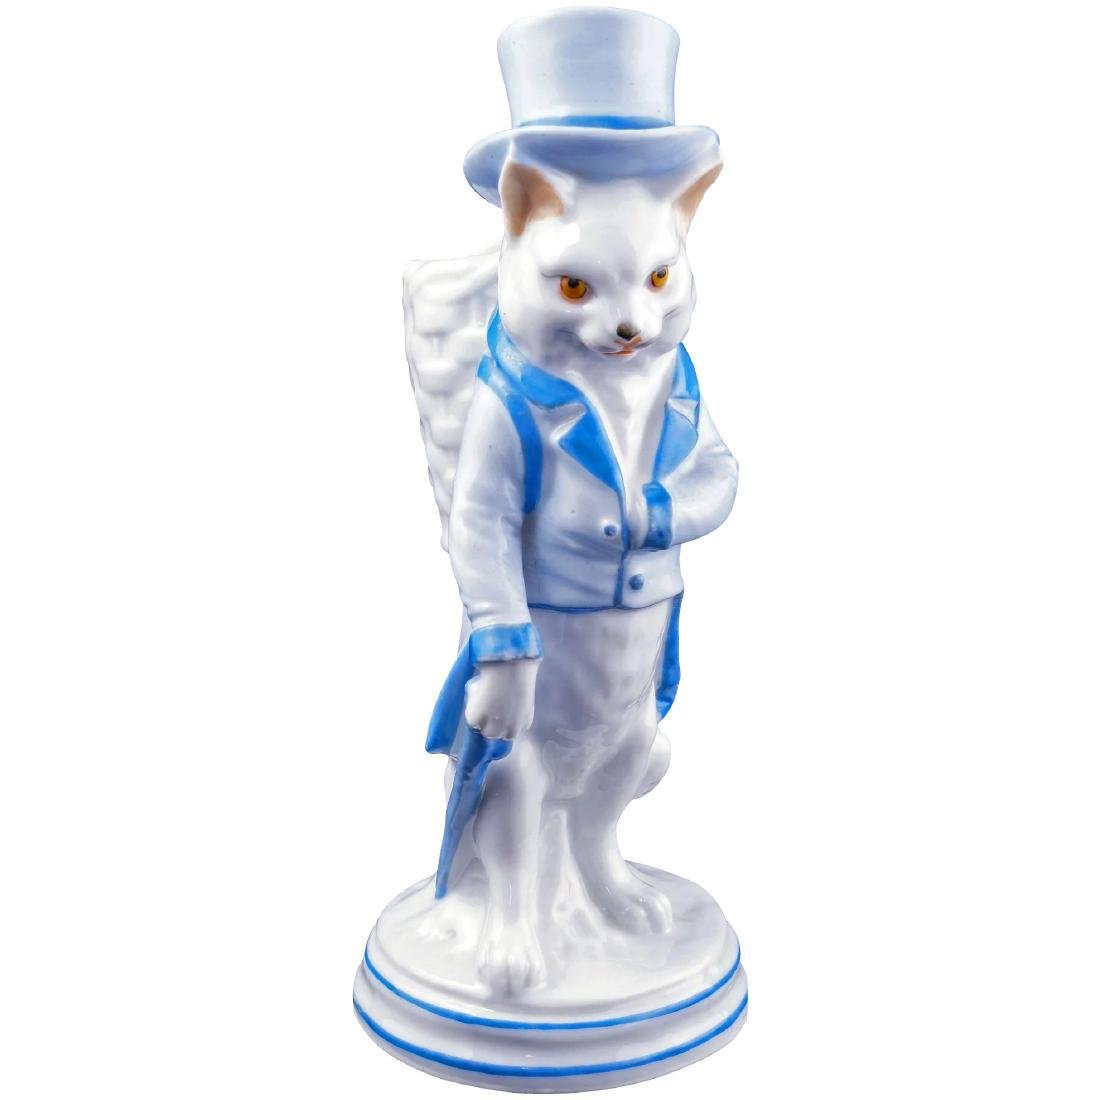 Antique German porcelain figure of gentleman cat match